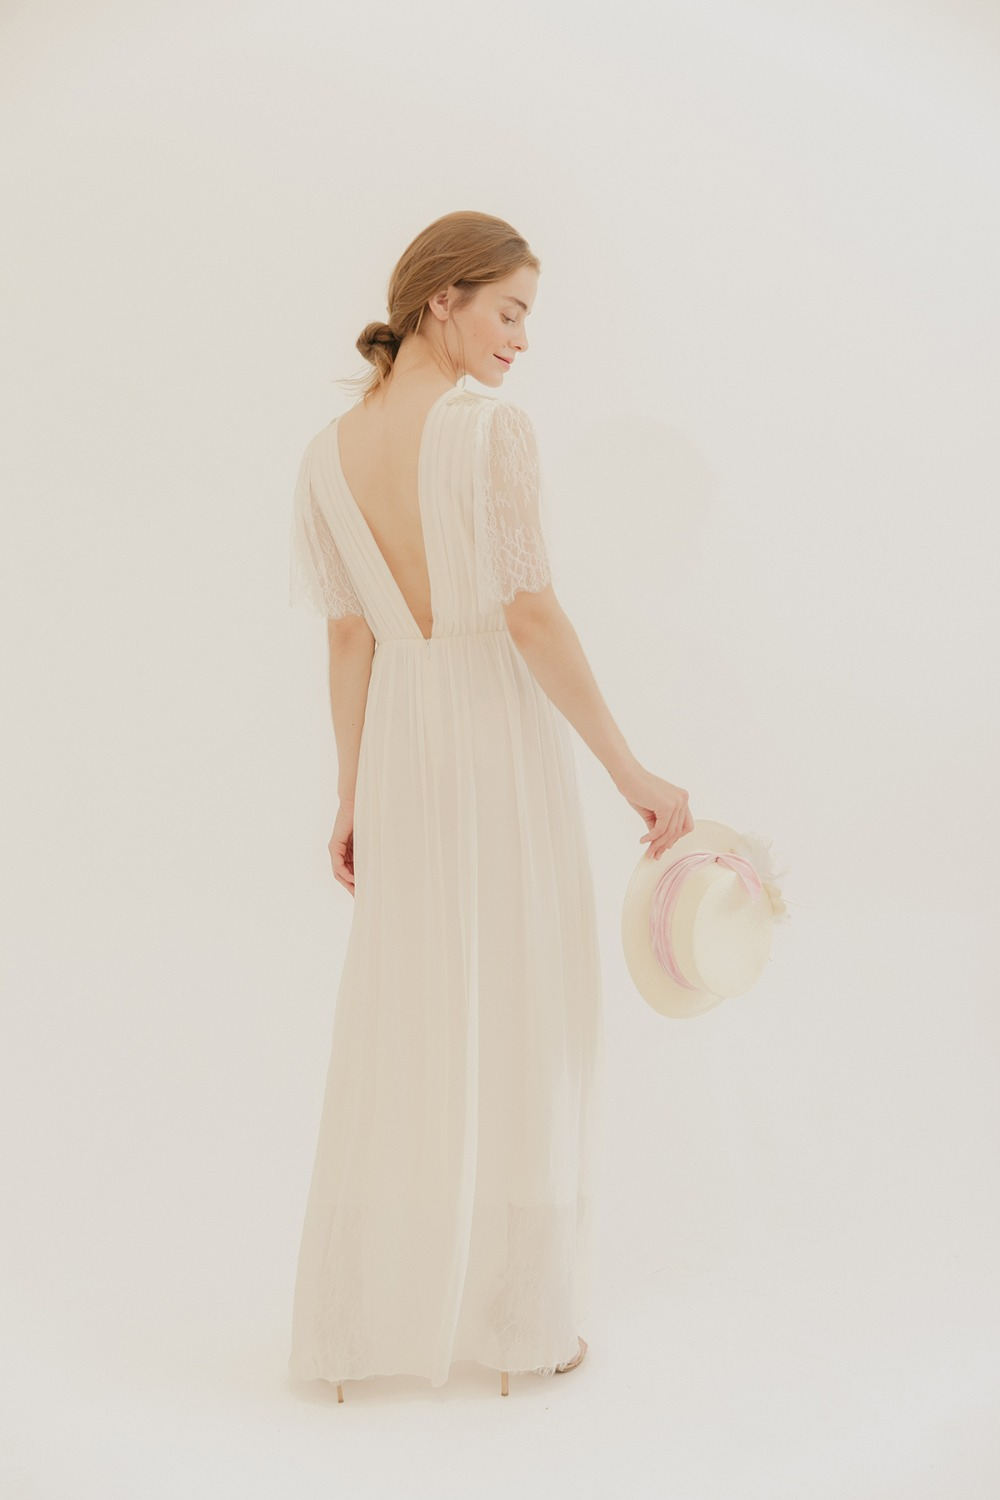 v backed wedding dress by L. Wells